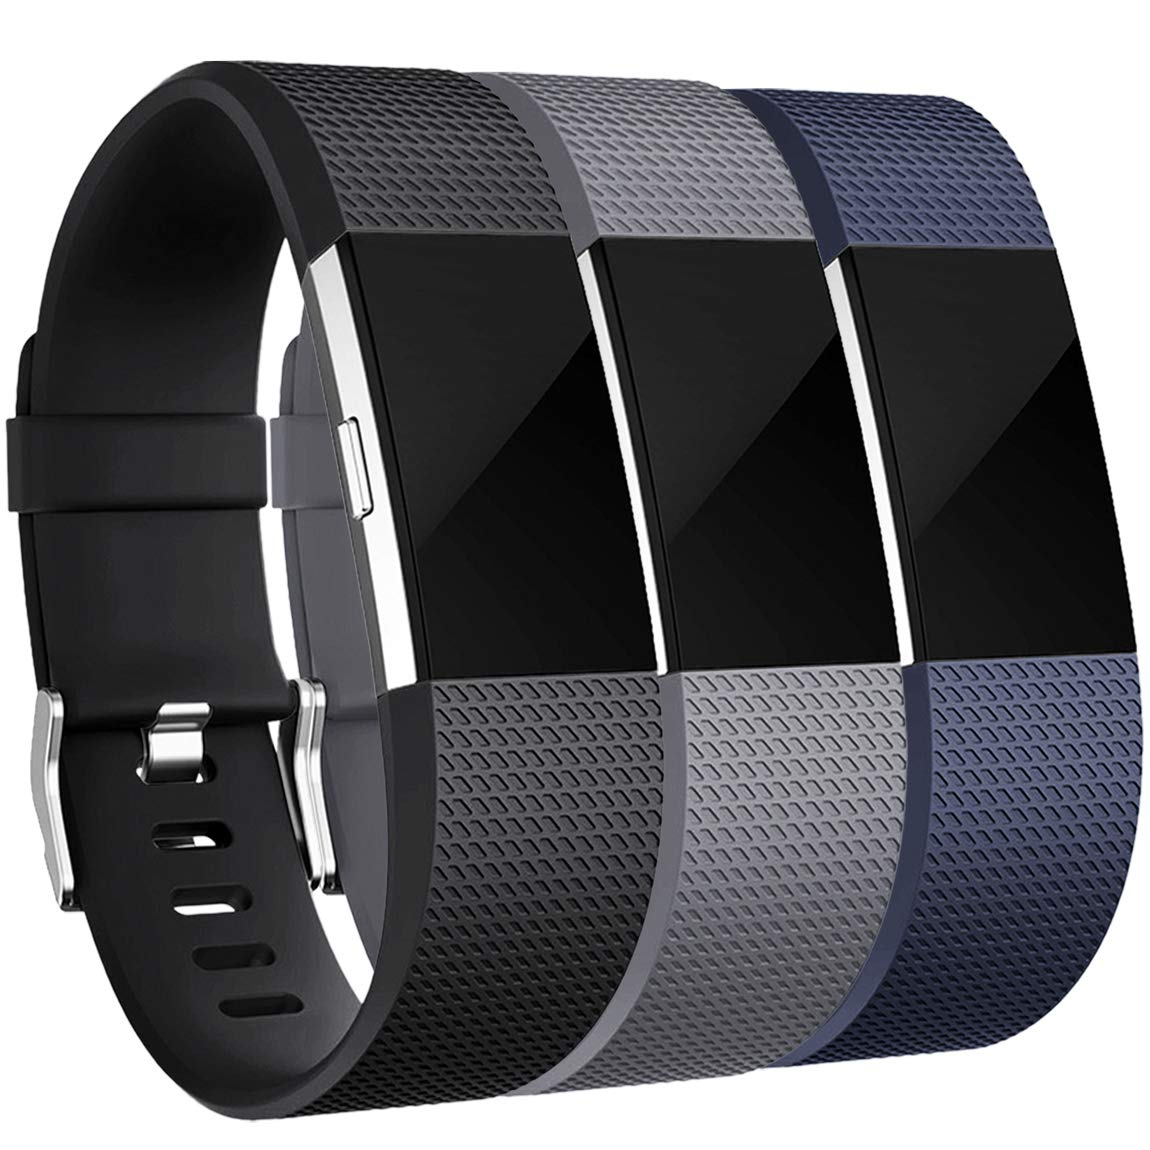 Maledan Bands Replacement Compatible with Fitbit Charge 2, 3-Pack, Small Gray/Blue/Black